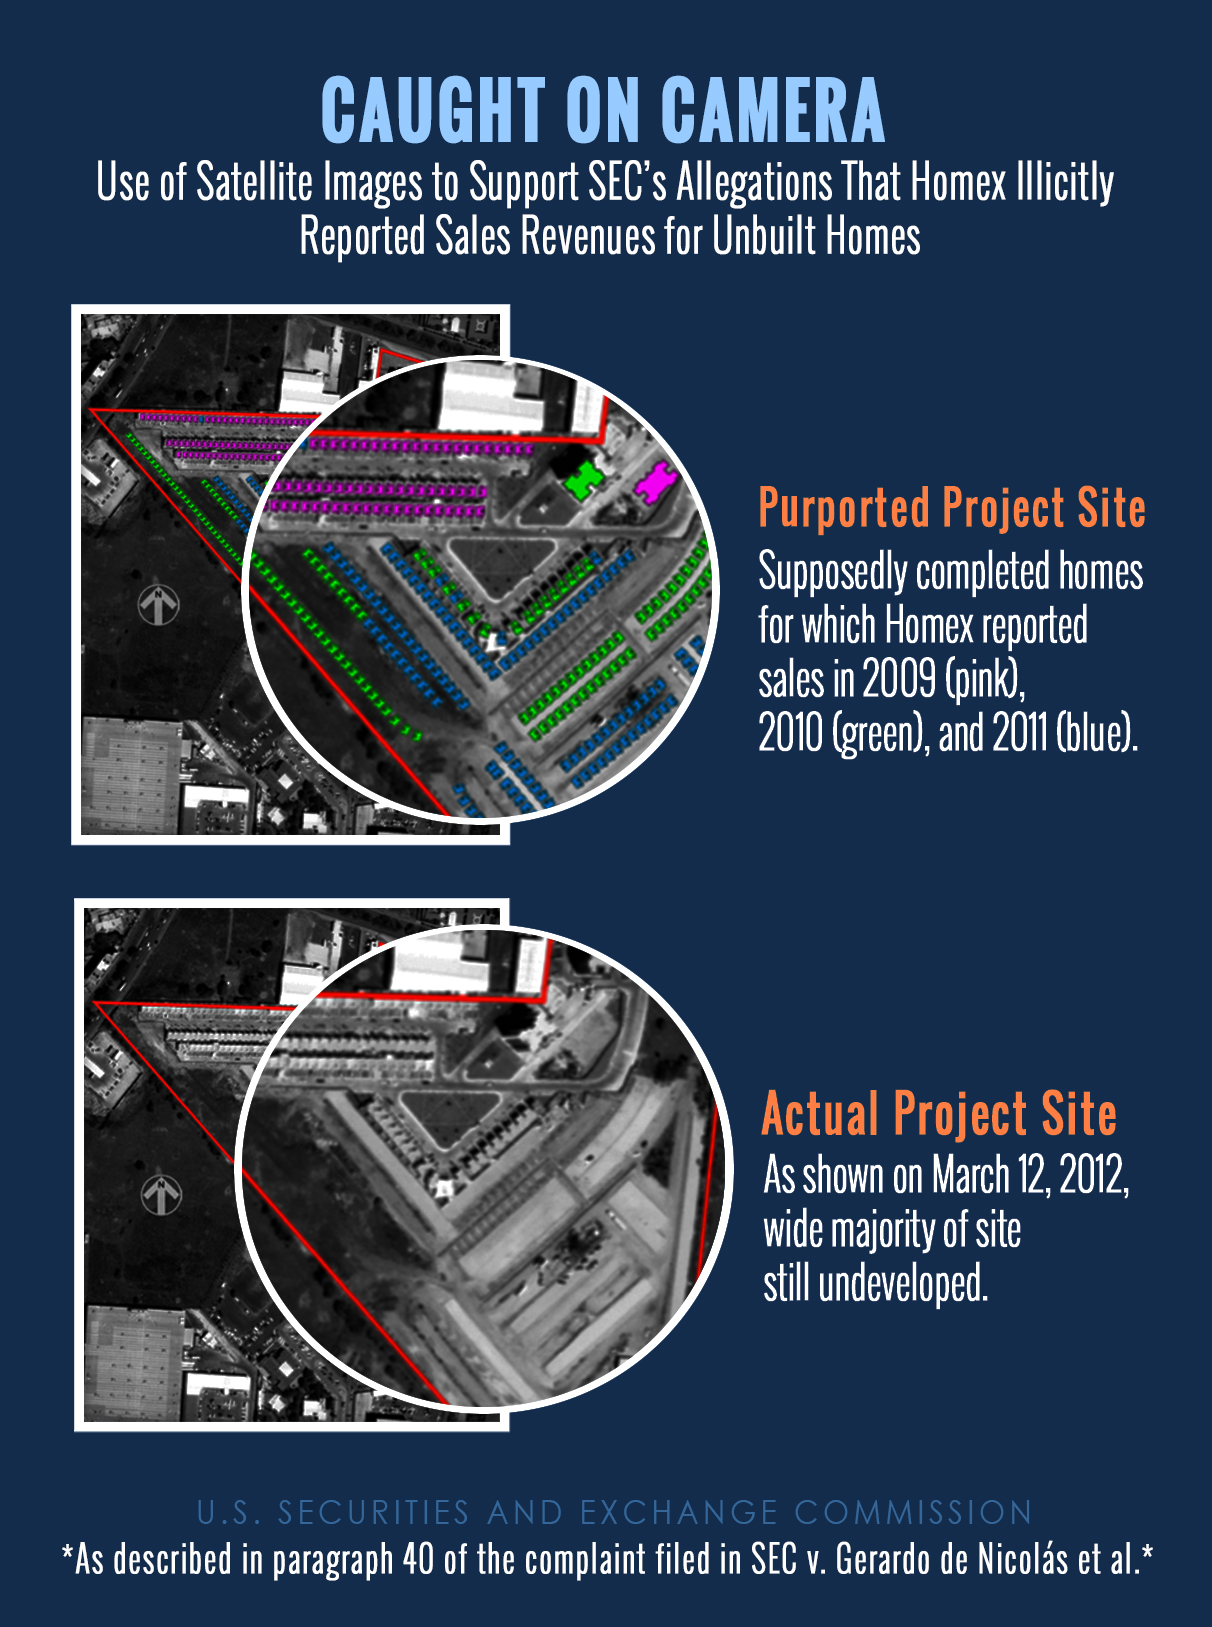 satellite image illustrates SEC allegation that Homex had not even broken ground on many of the homes for which it reported revenues